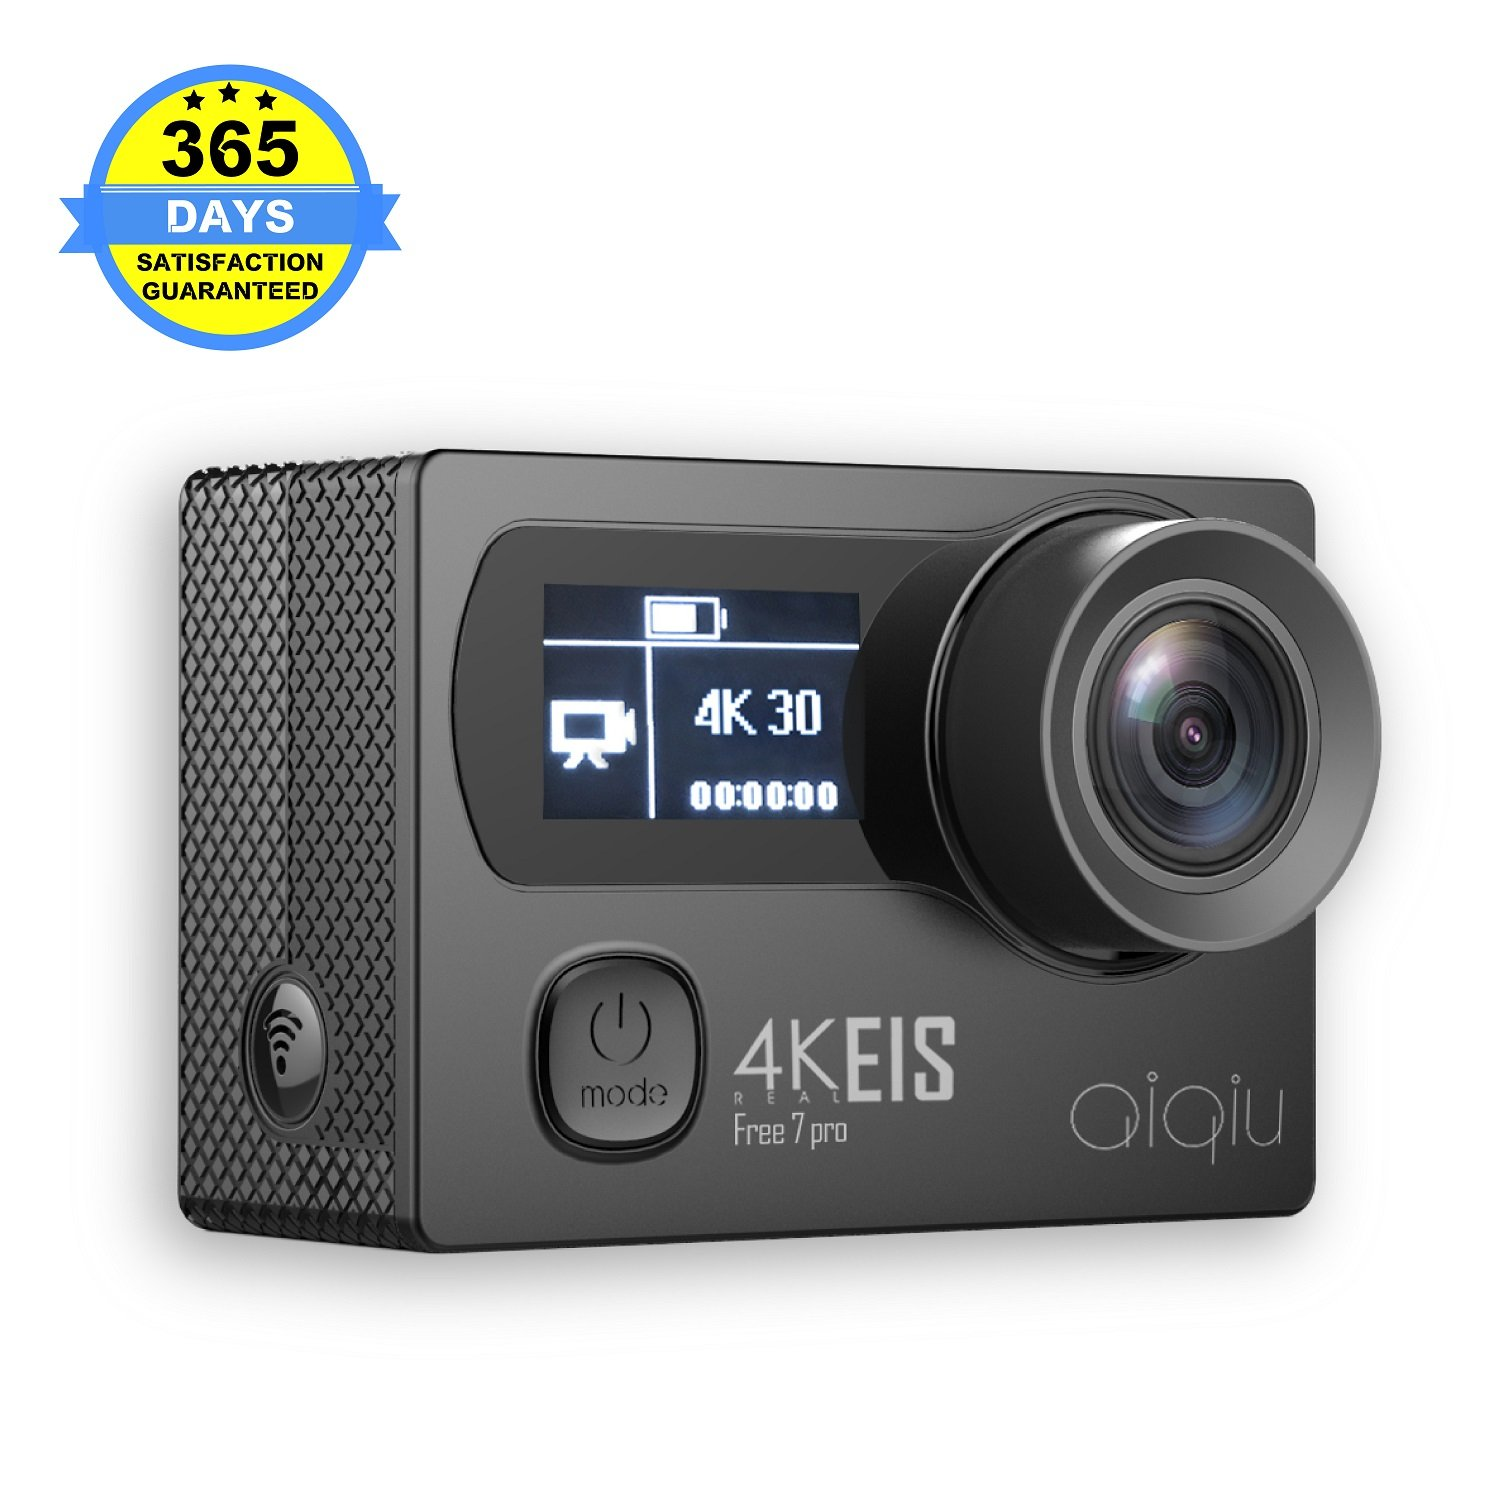 AIQIU Native 4K EIS Action Camera, Wifi Waterproof Sports Video Cam with Sony Sensor Ambarella Chipset, 12MP 170 Wide Angle + 2 Rechargeable 1350mAh Batteries + Remote Control + 22 Mounting Kits by AIQIU